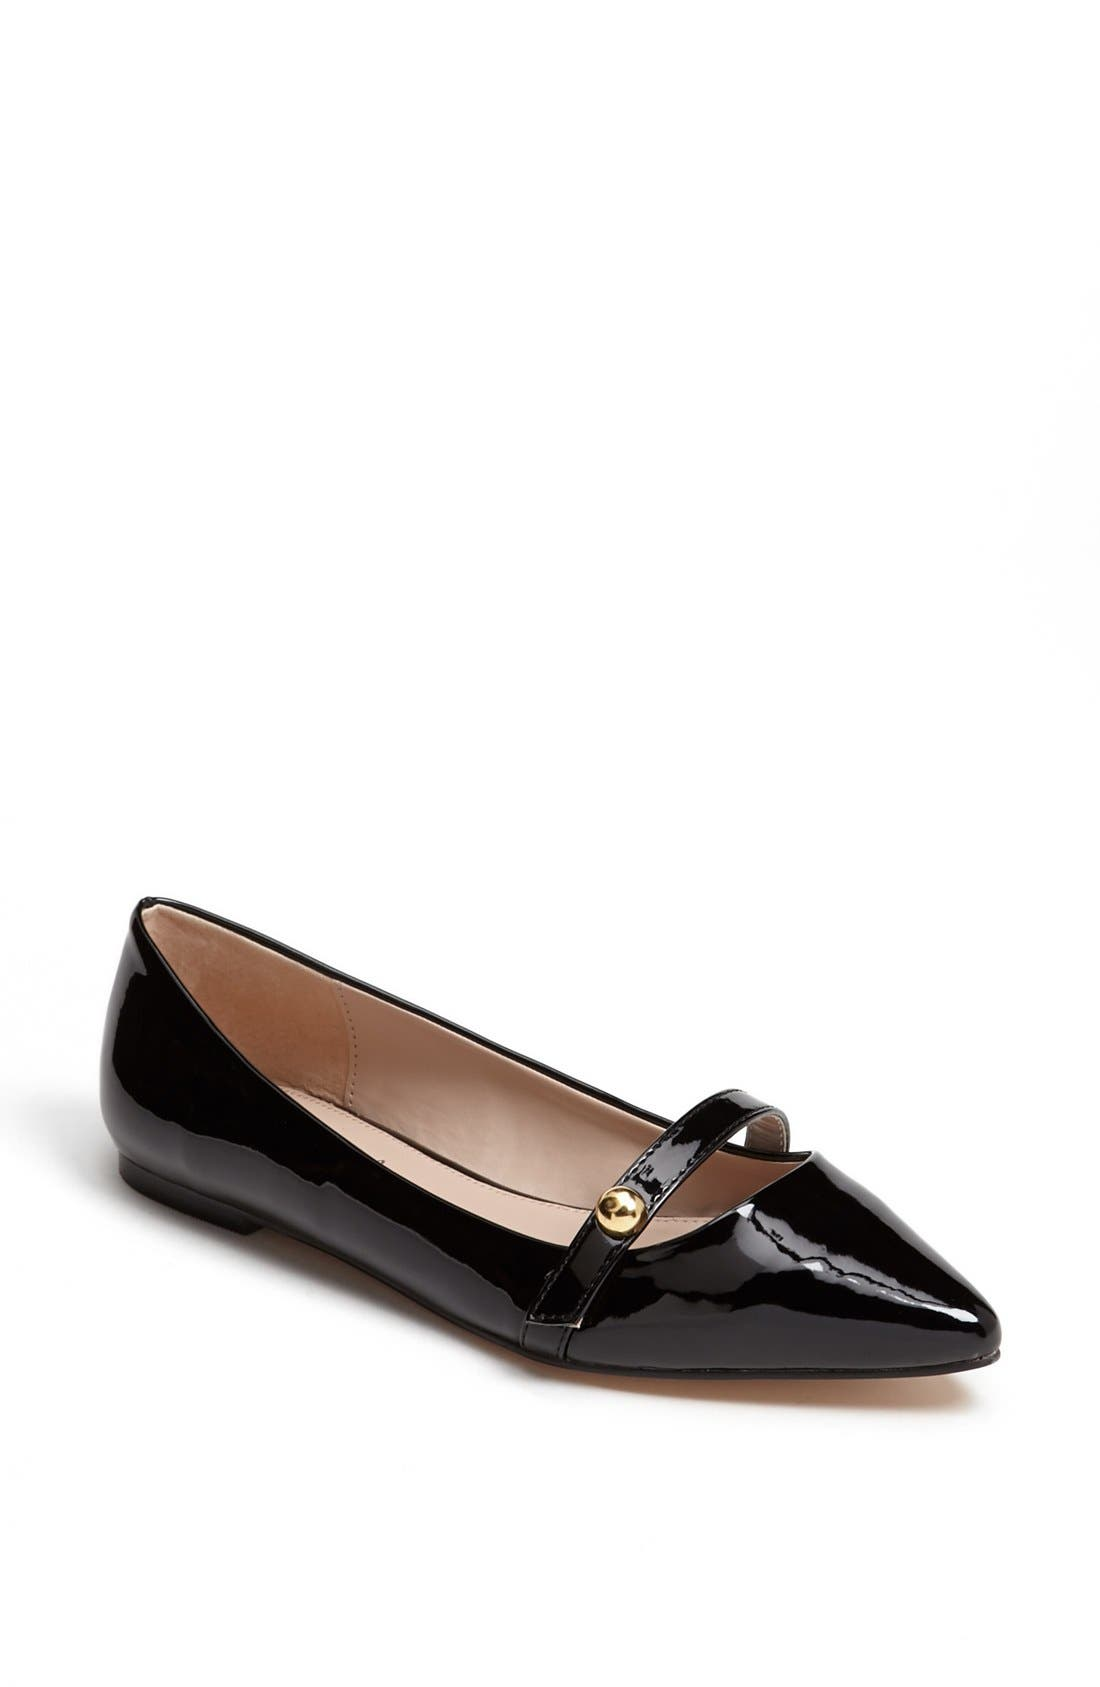 Alternate Image 1 Selected - Carvela Kurt Geiger 'Hanny' Pointed Toe Flat